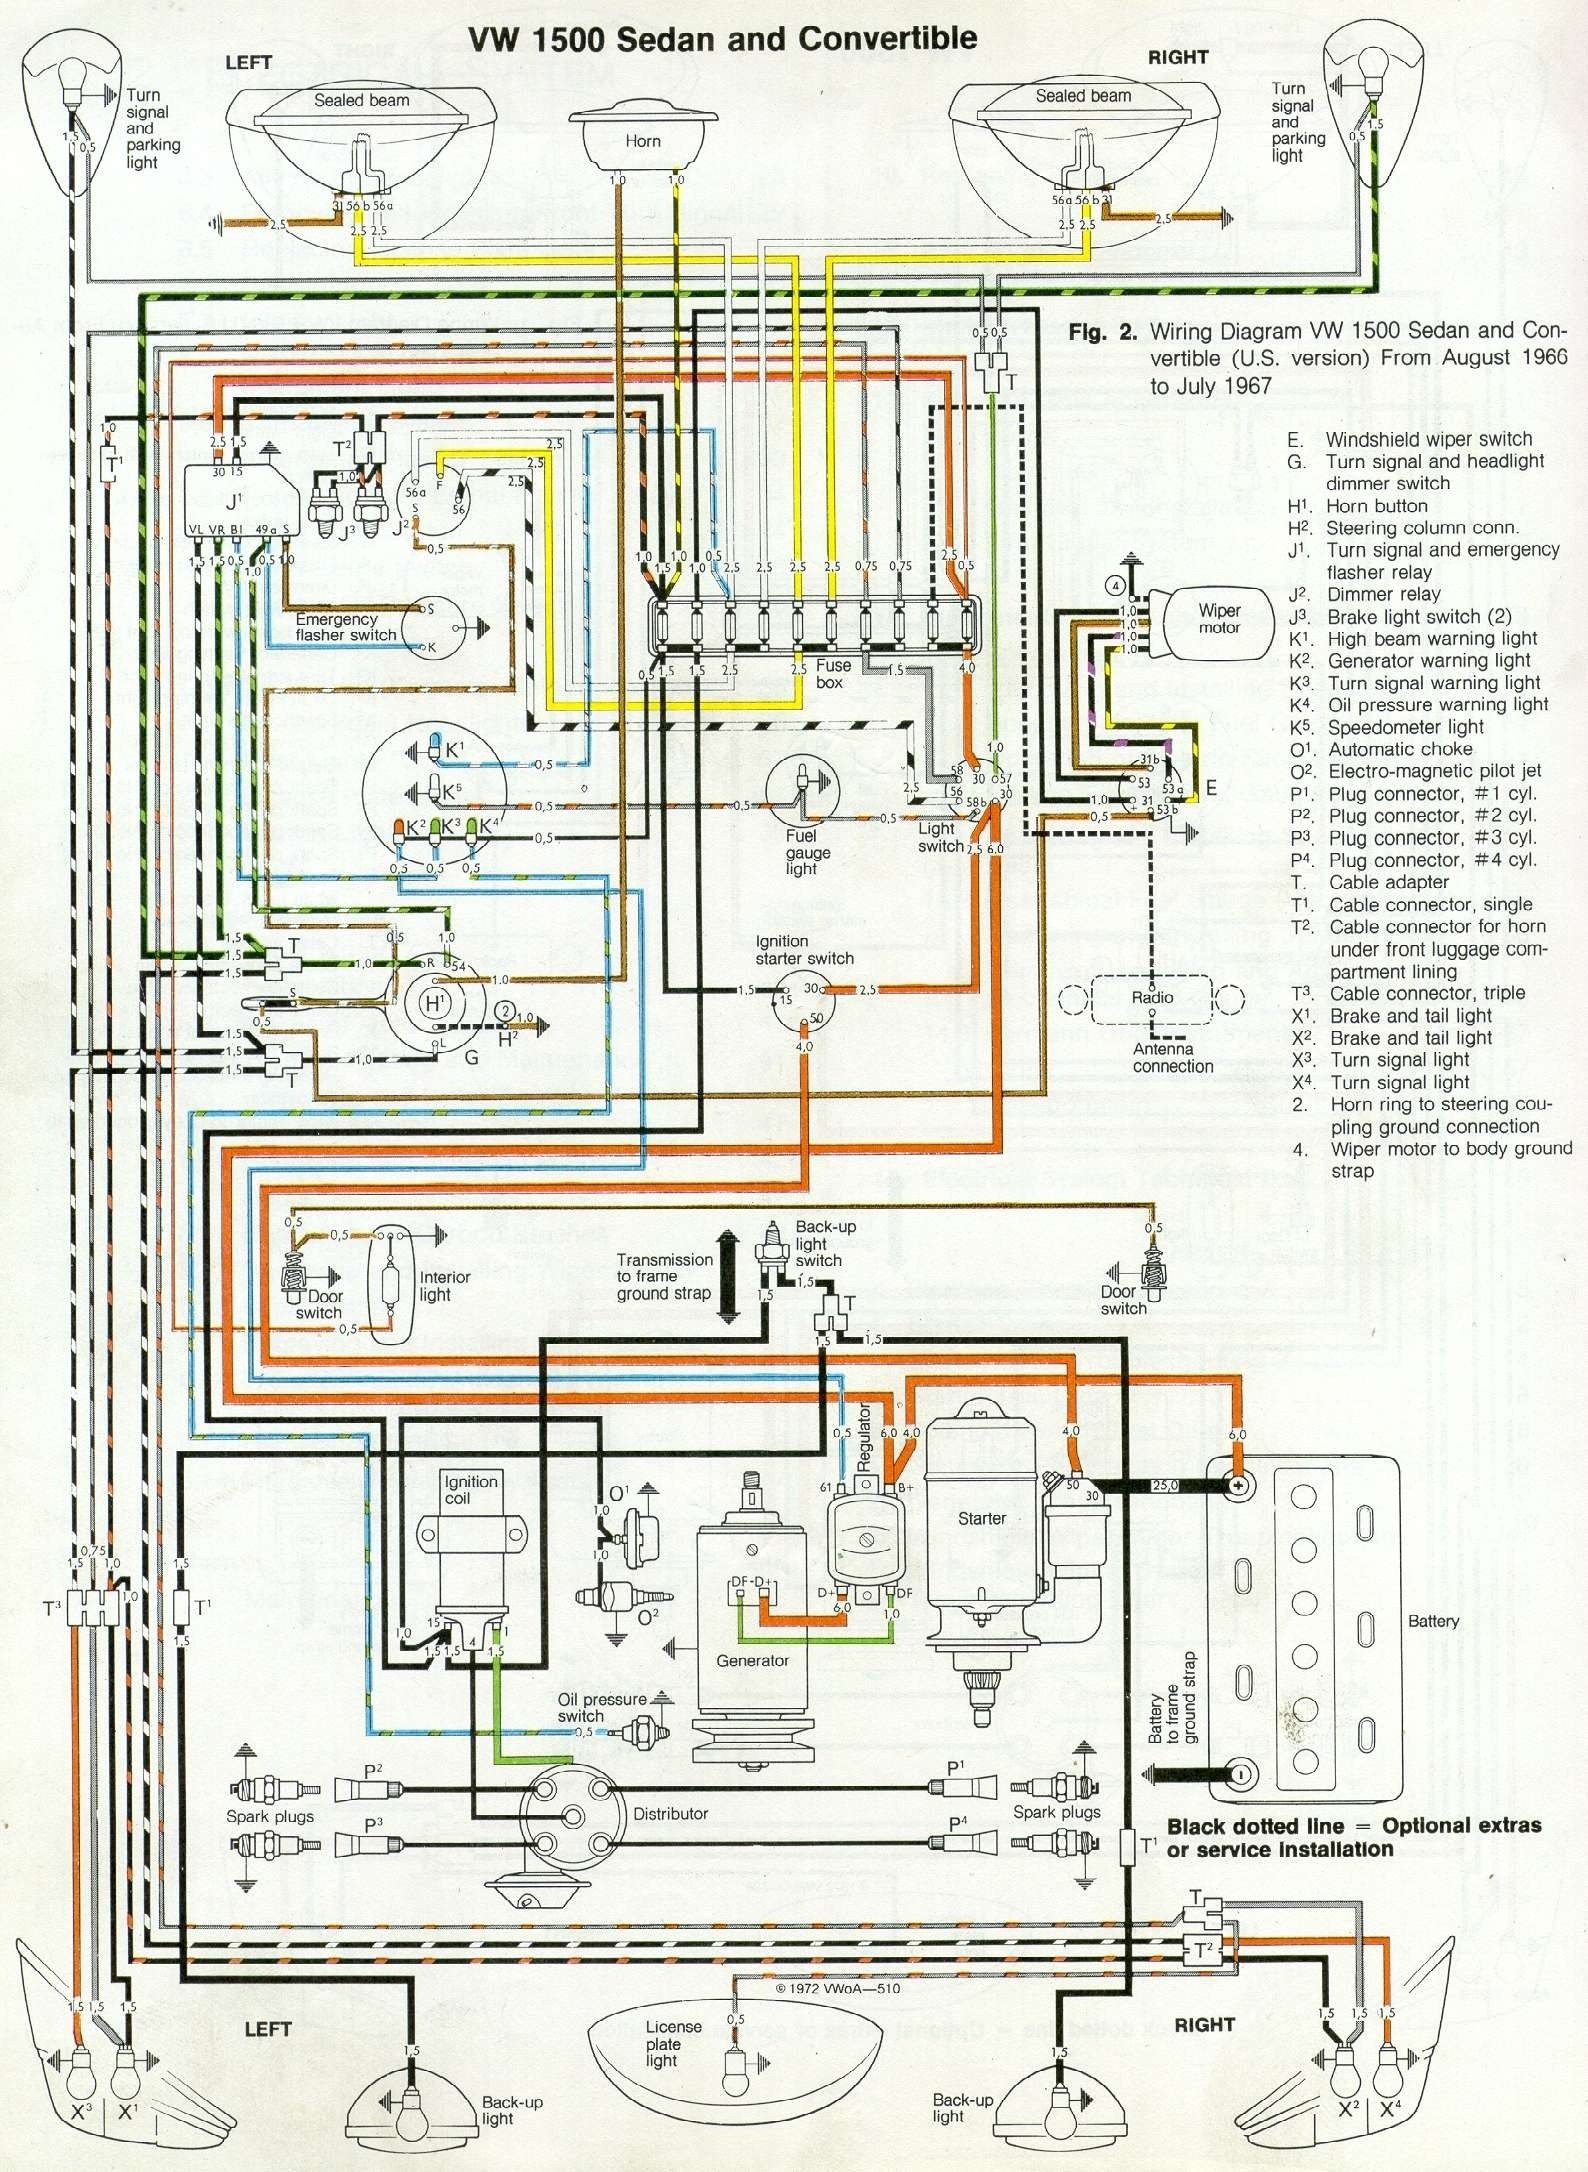 80fbec6dc035e6862b5ab48389504277 66 and '67 vw beetle wiring diagram vw beetles, beetles and sedans 1957 vw bug wiring diagram at soozxer.org